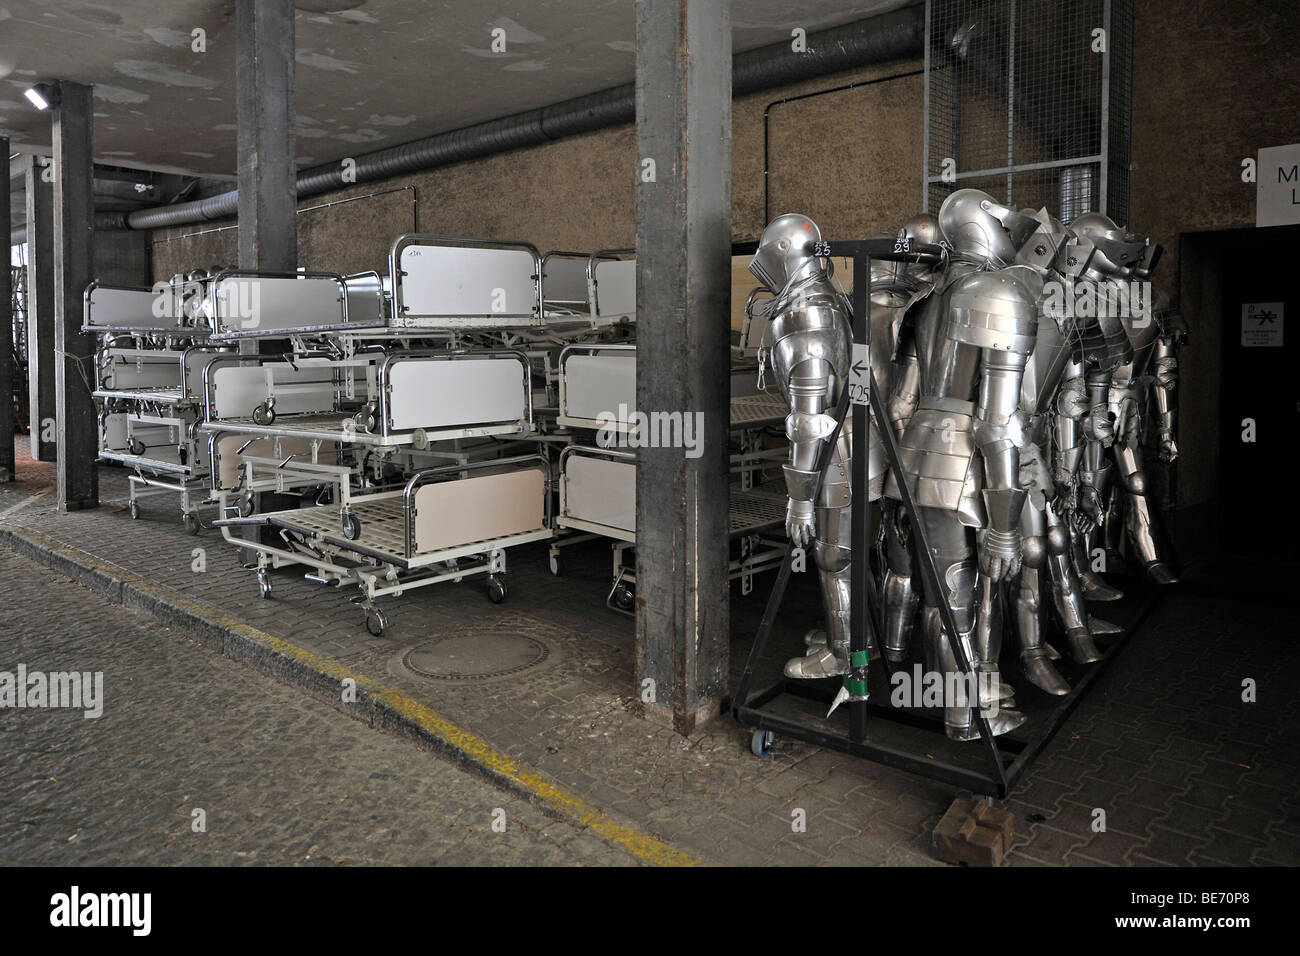 Hospital beds and knight's armour as props, Deutsche Oper Berlin, German Opera in Berlin, Germany, Europe - Stock Image